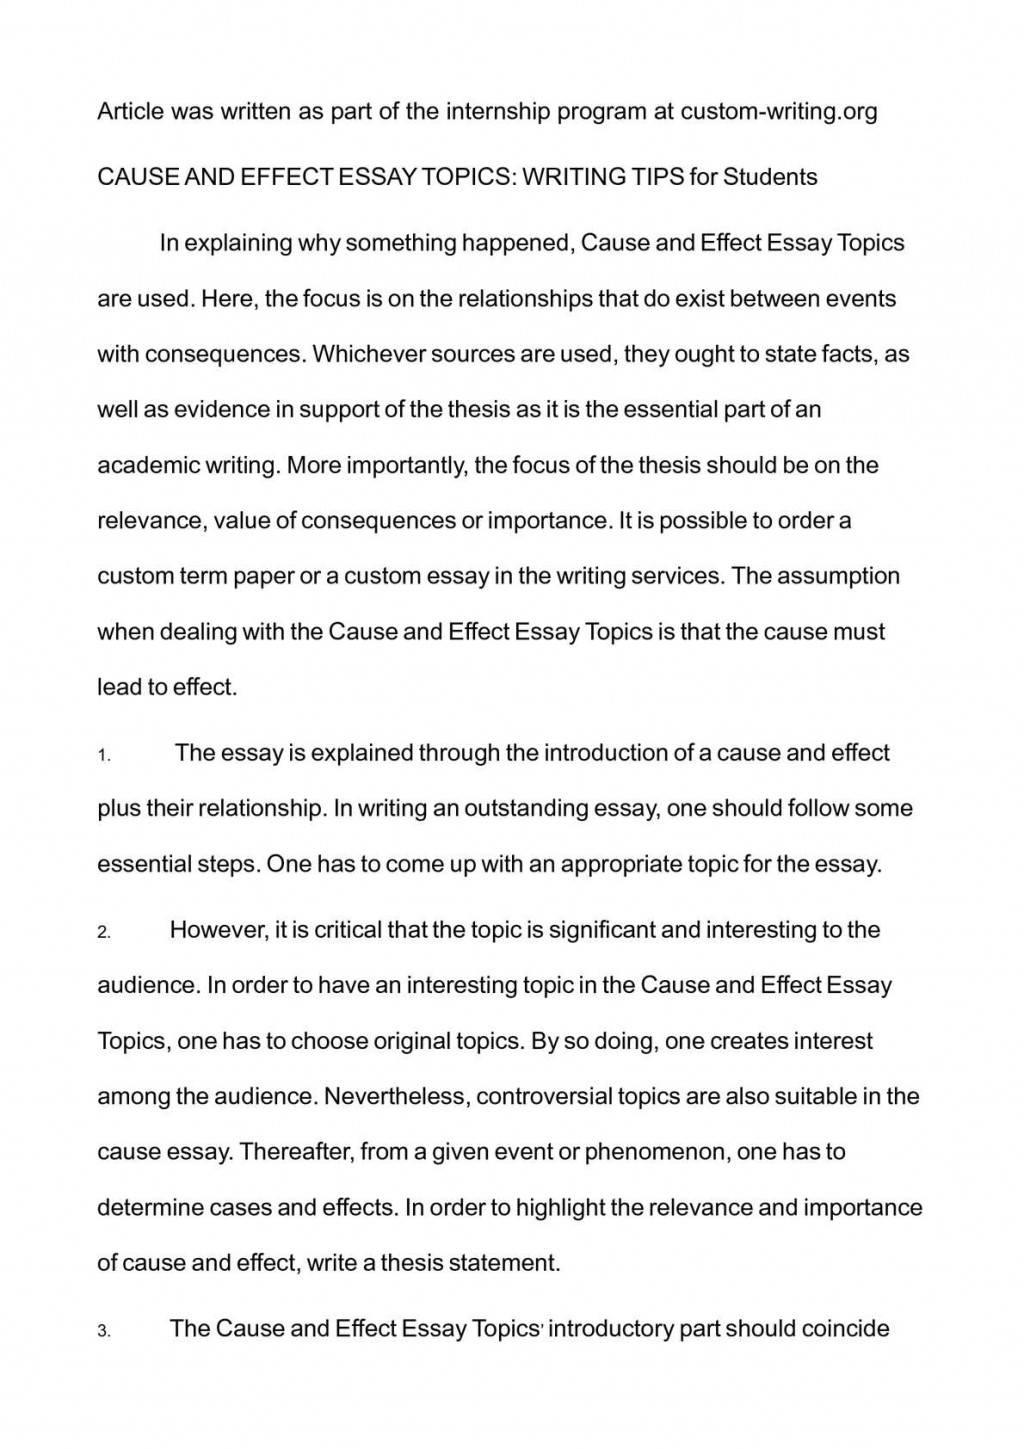 002 Essay Example P1 Cause And Effect Exceptional Topics For College Students High School Basketball Large